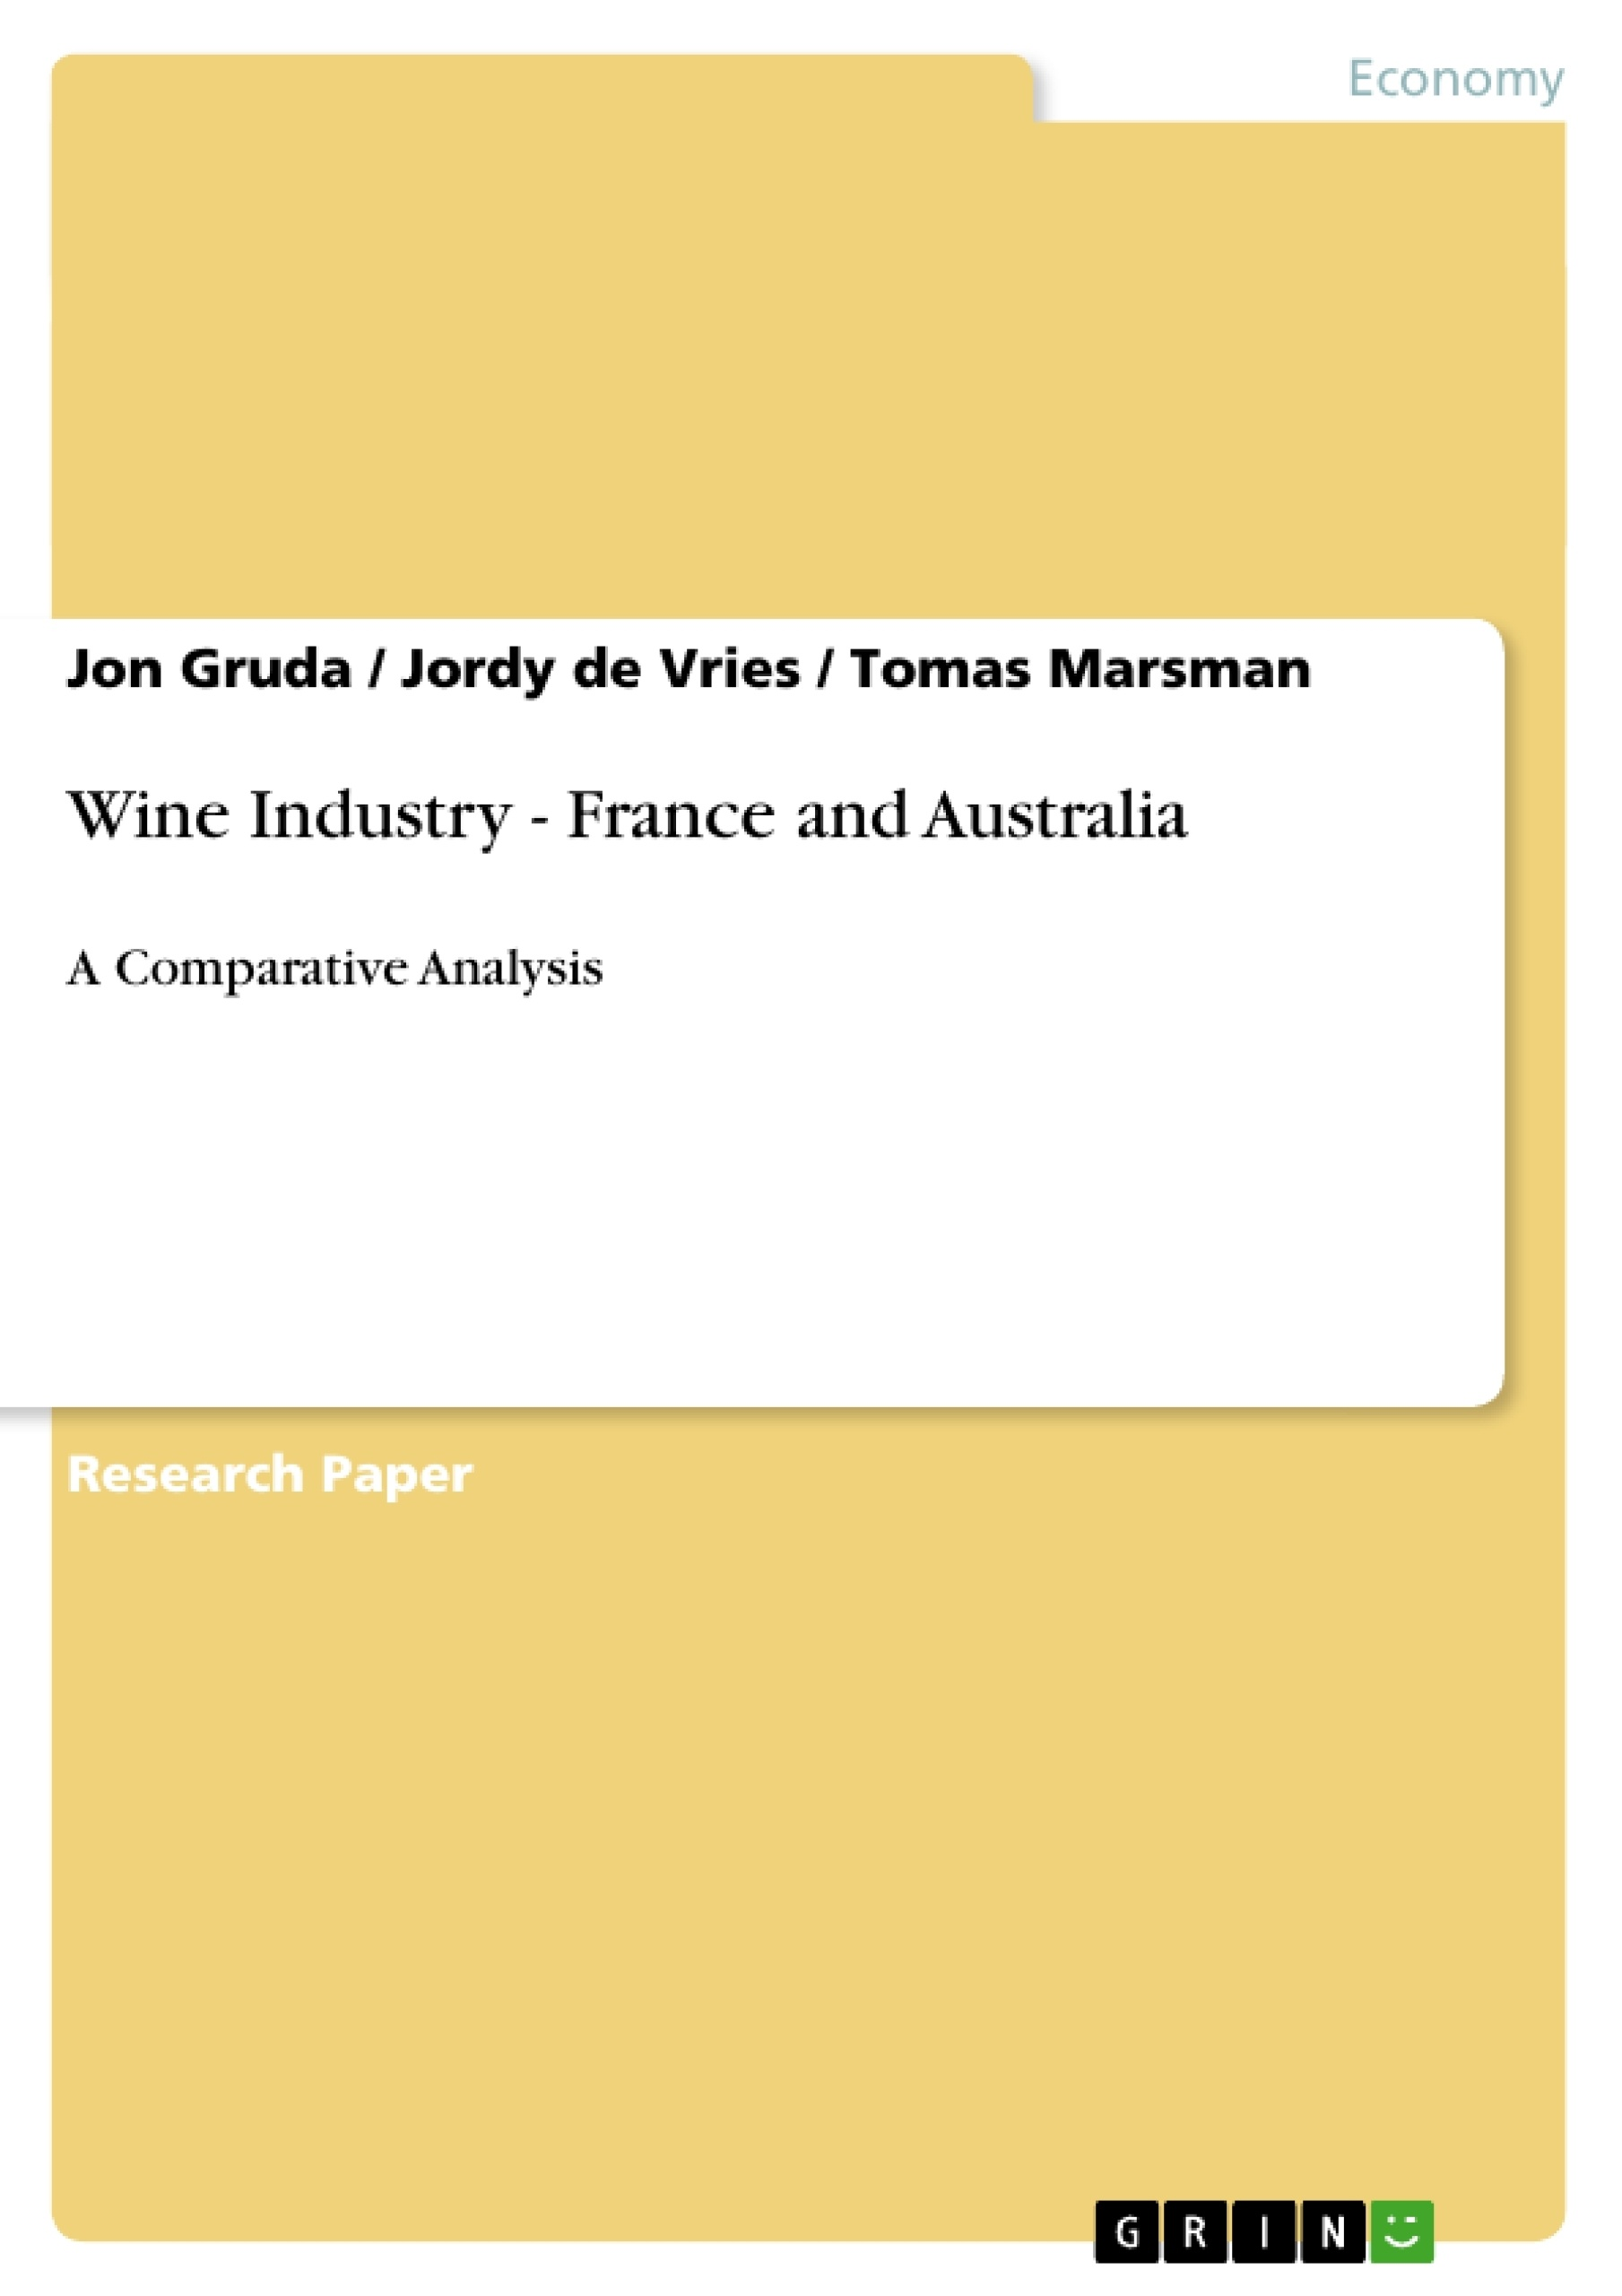 Title: Wine Industry - France and Australia